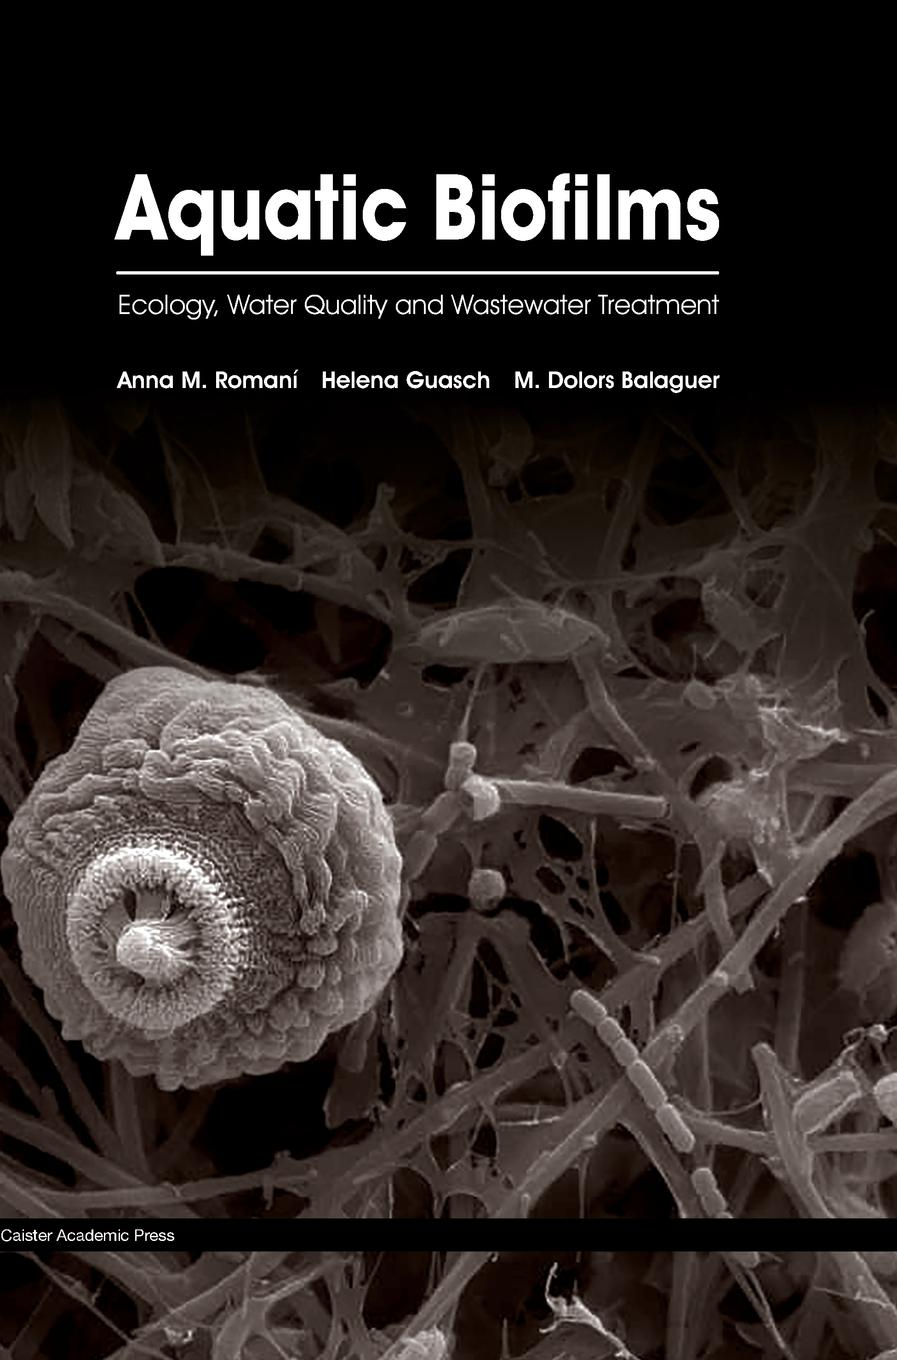 aquaticbiofilms